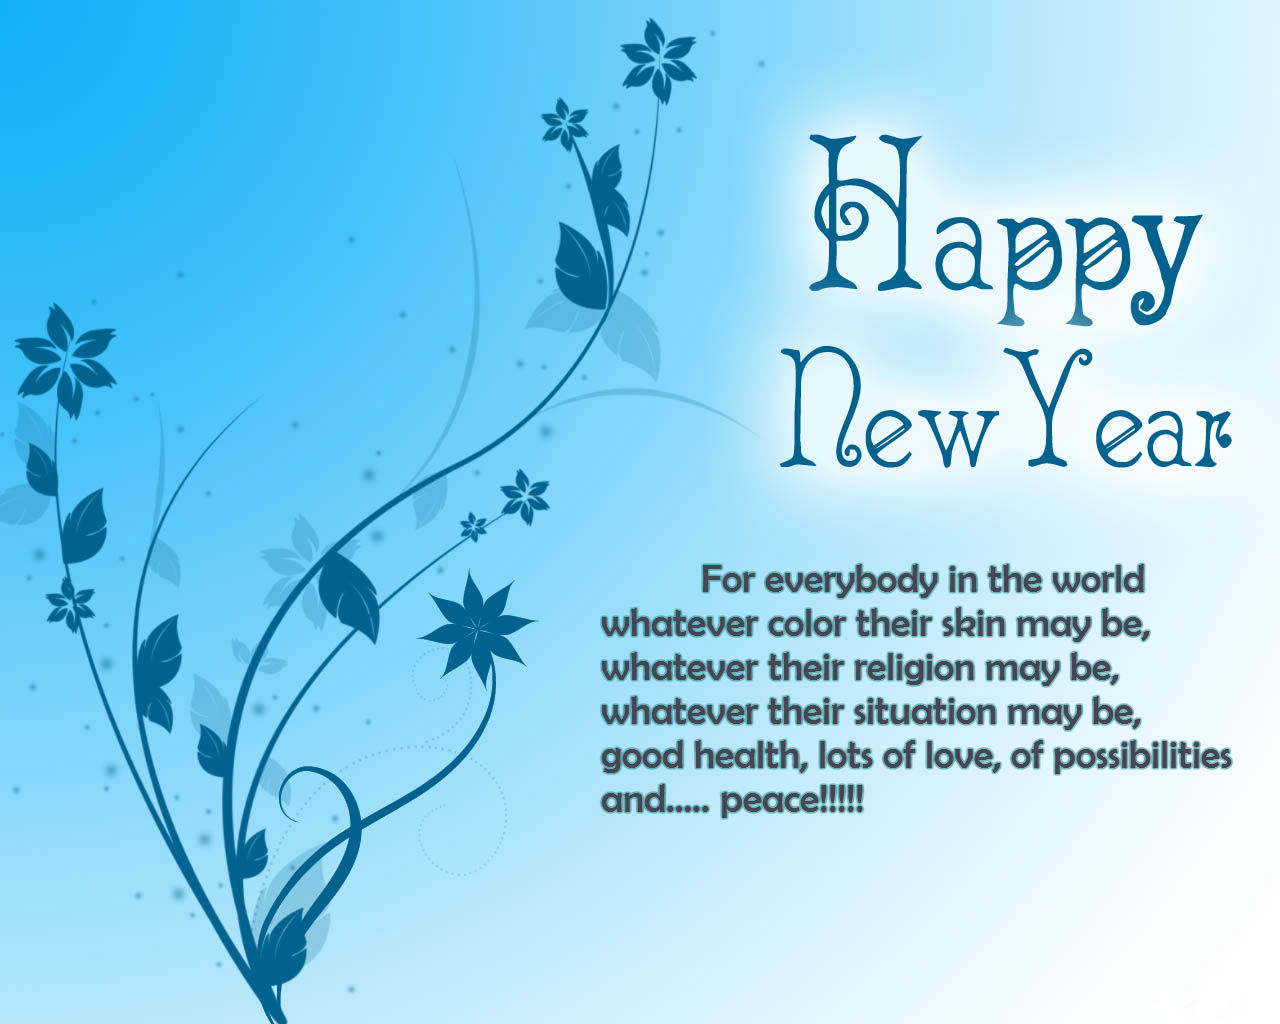 happynewyear2013wishesgreetingcards2jpg. 1280 x 1024.Happy New Year Wishes 2014  In Kannada